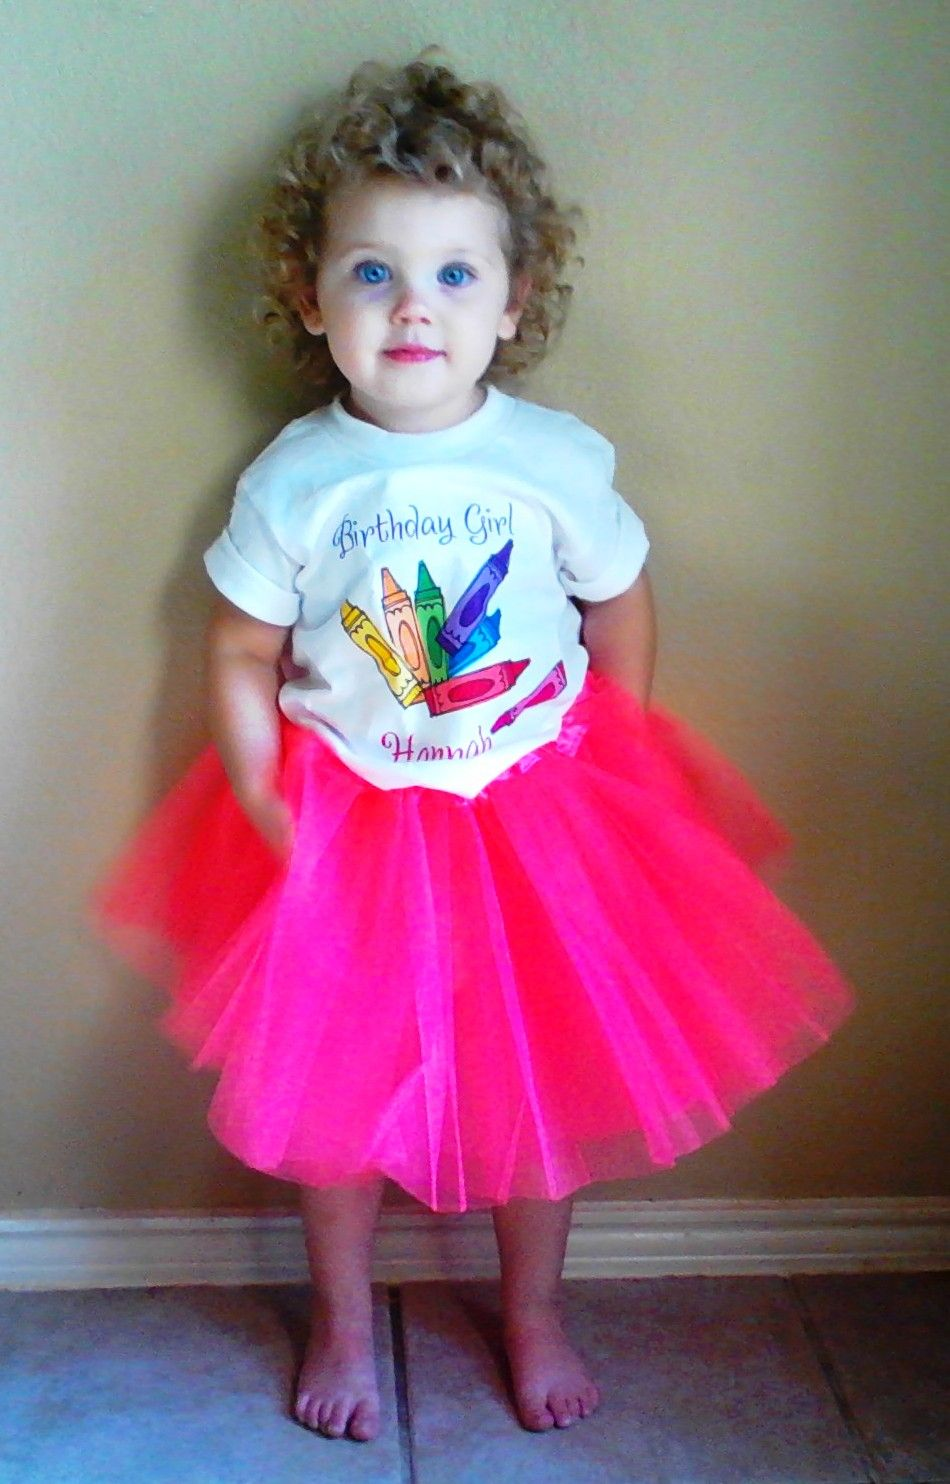 Crayola Or Crayon Themed Birthday Outfit For A 2 Year Old Purchased From The TuTu Fairy